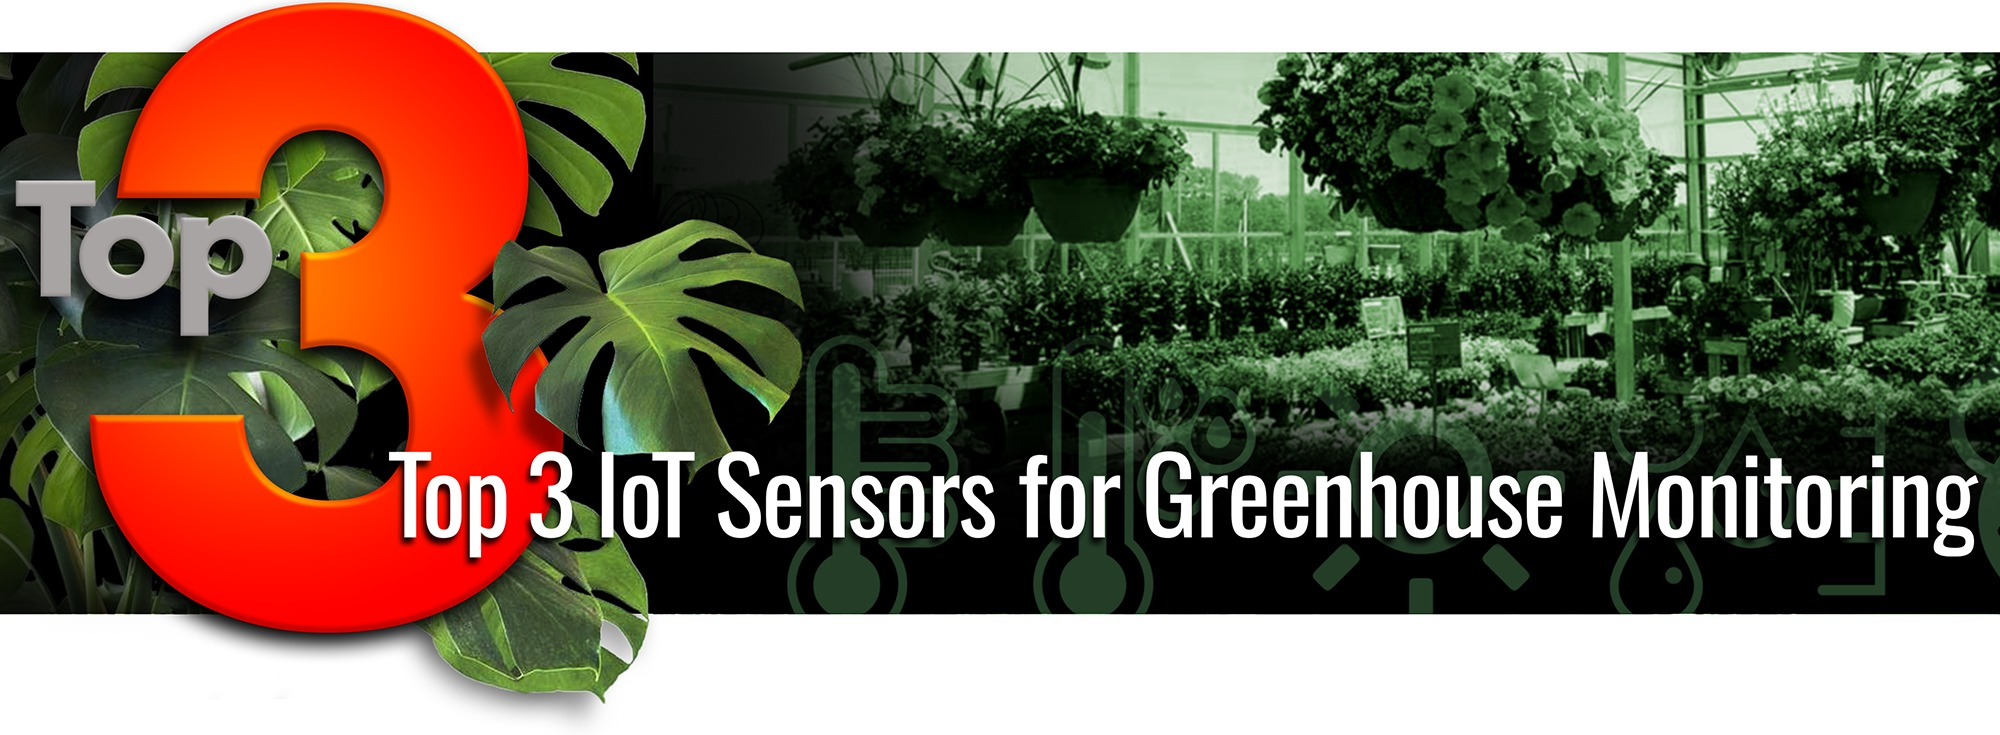 Top 3 IoT Sensors for Greenhouse Monitoring